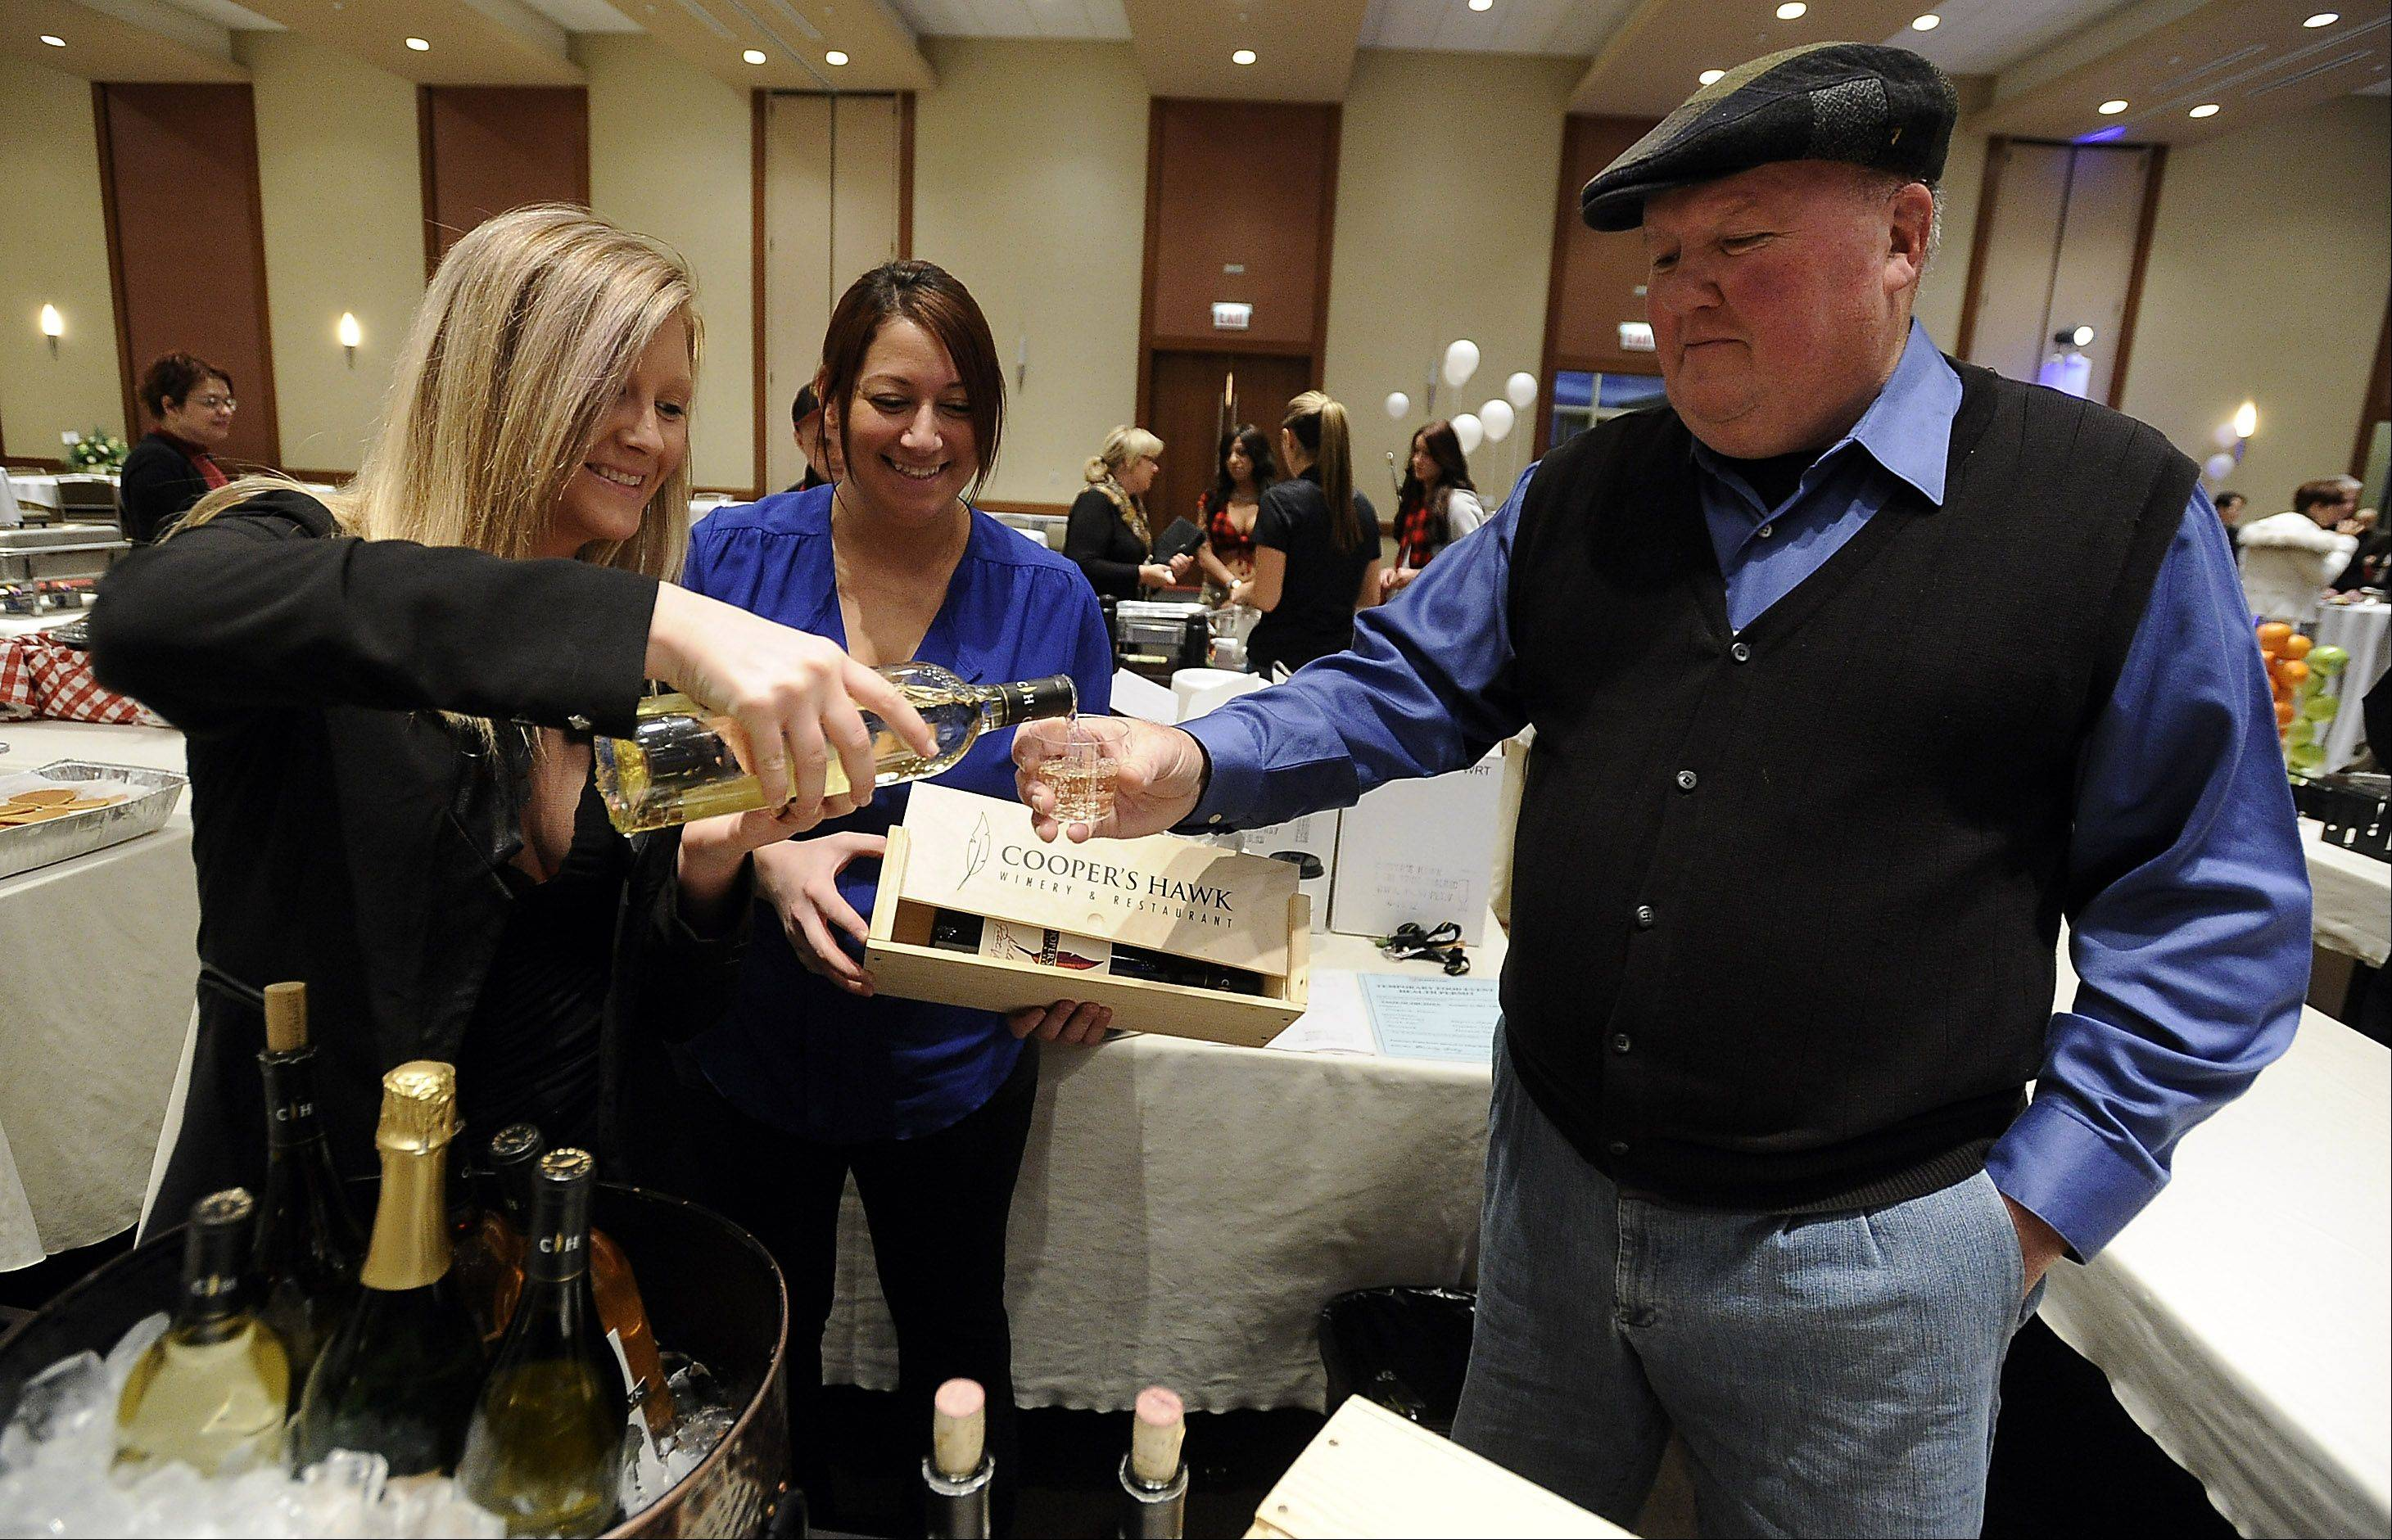 Kristy Framke, assistant event coordinator for Cooper�s Hawk of Wheeling, pours Dennis Degelmann of Arlington Heights a drink. Kelly Bulmash, also of Cooper�s Hawk, looks on.